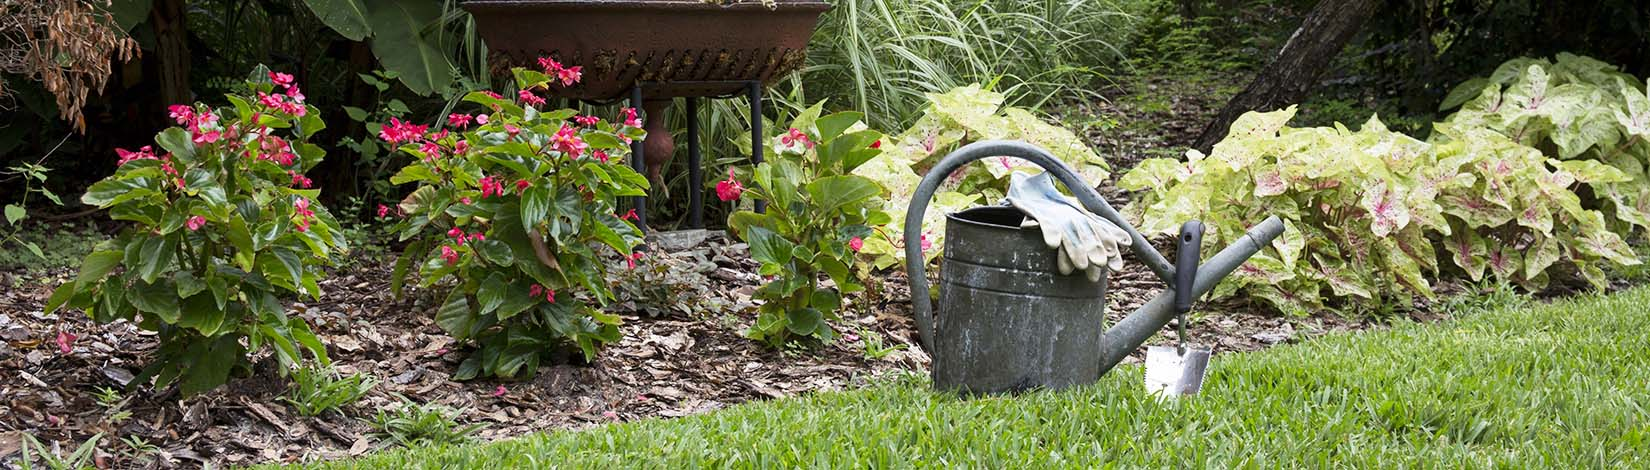 Watering container in a garden